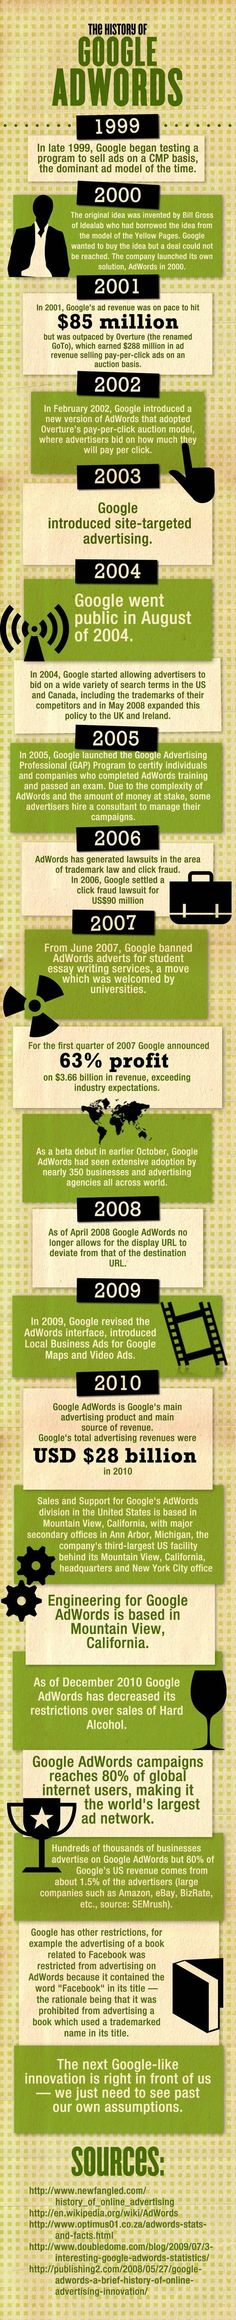 The history of Google Adwords #infographic. - mysmn.com